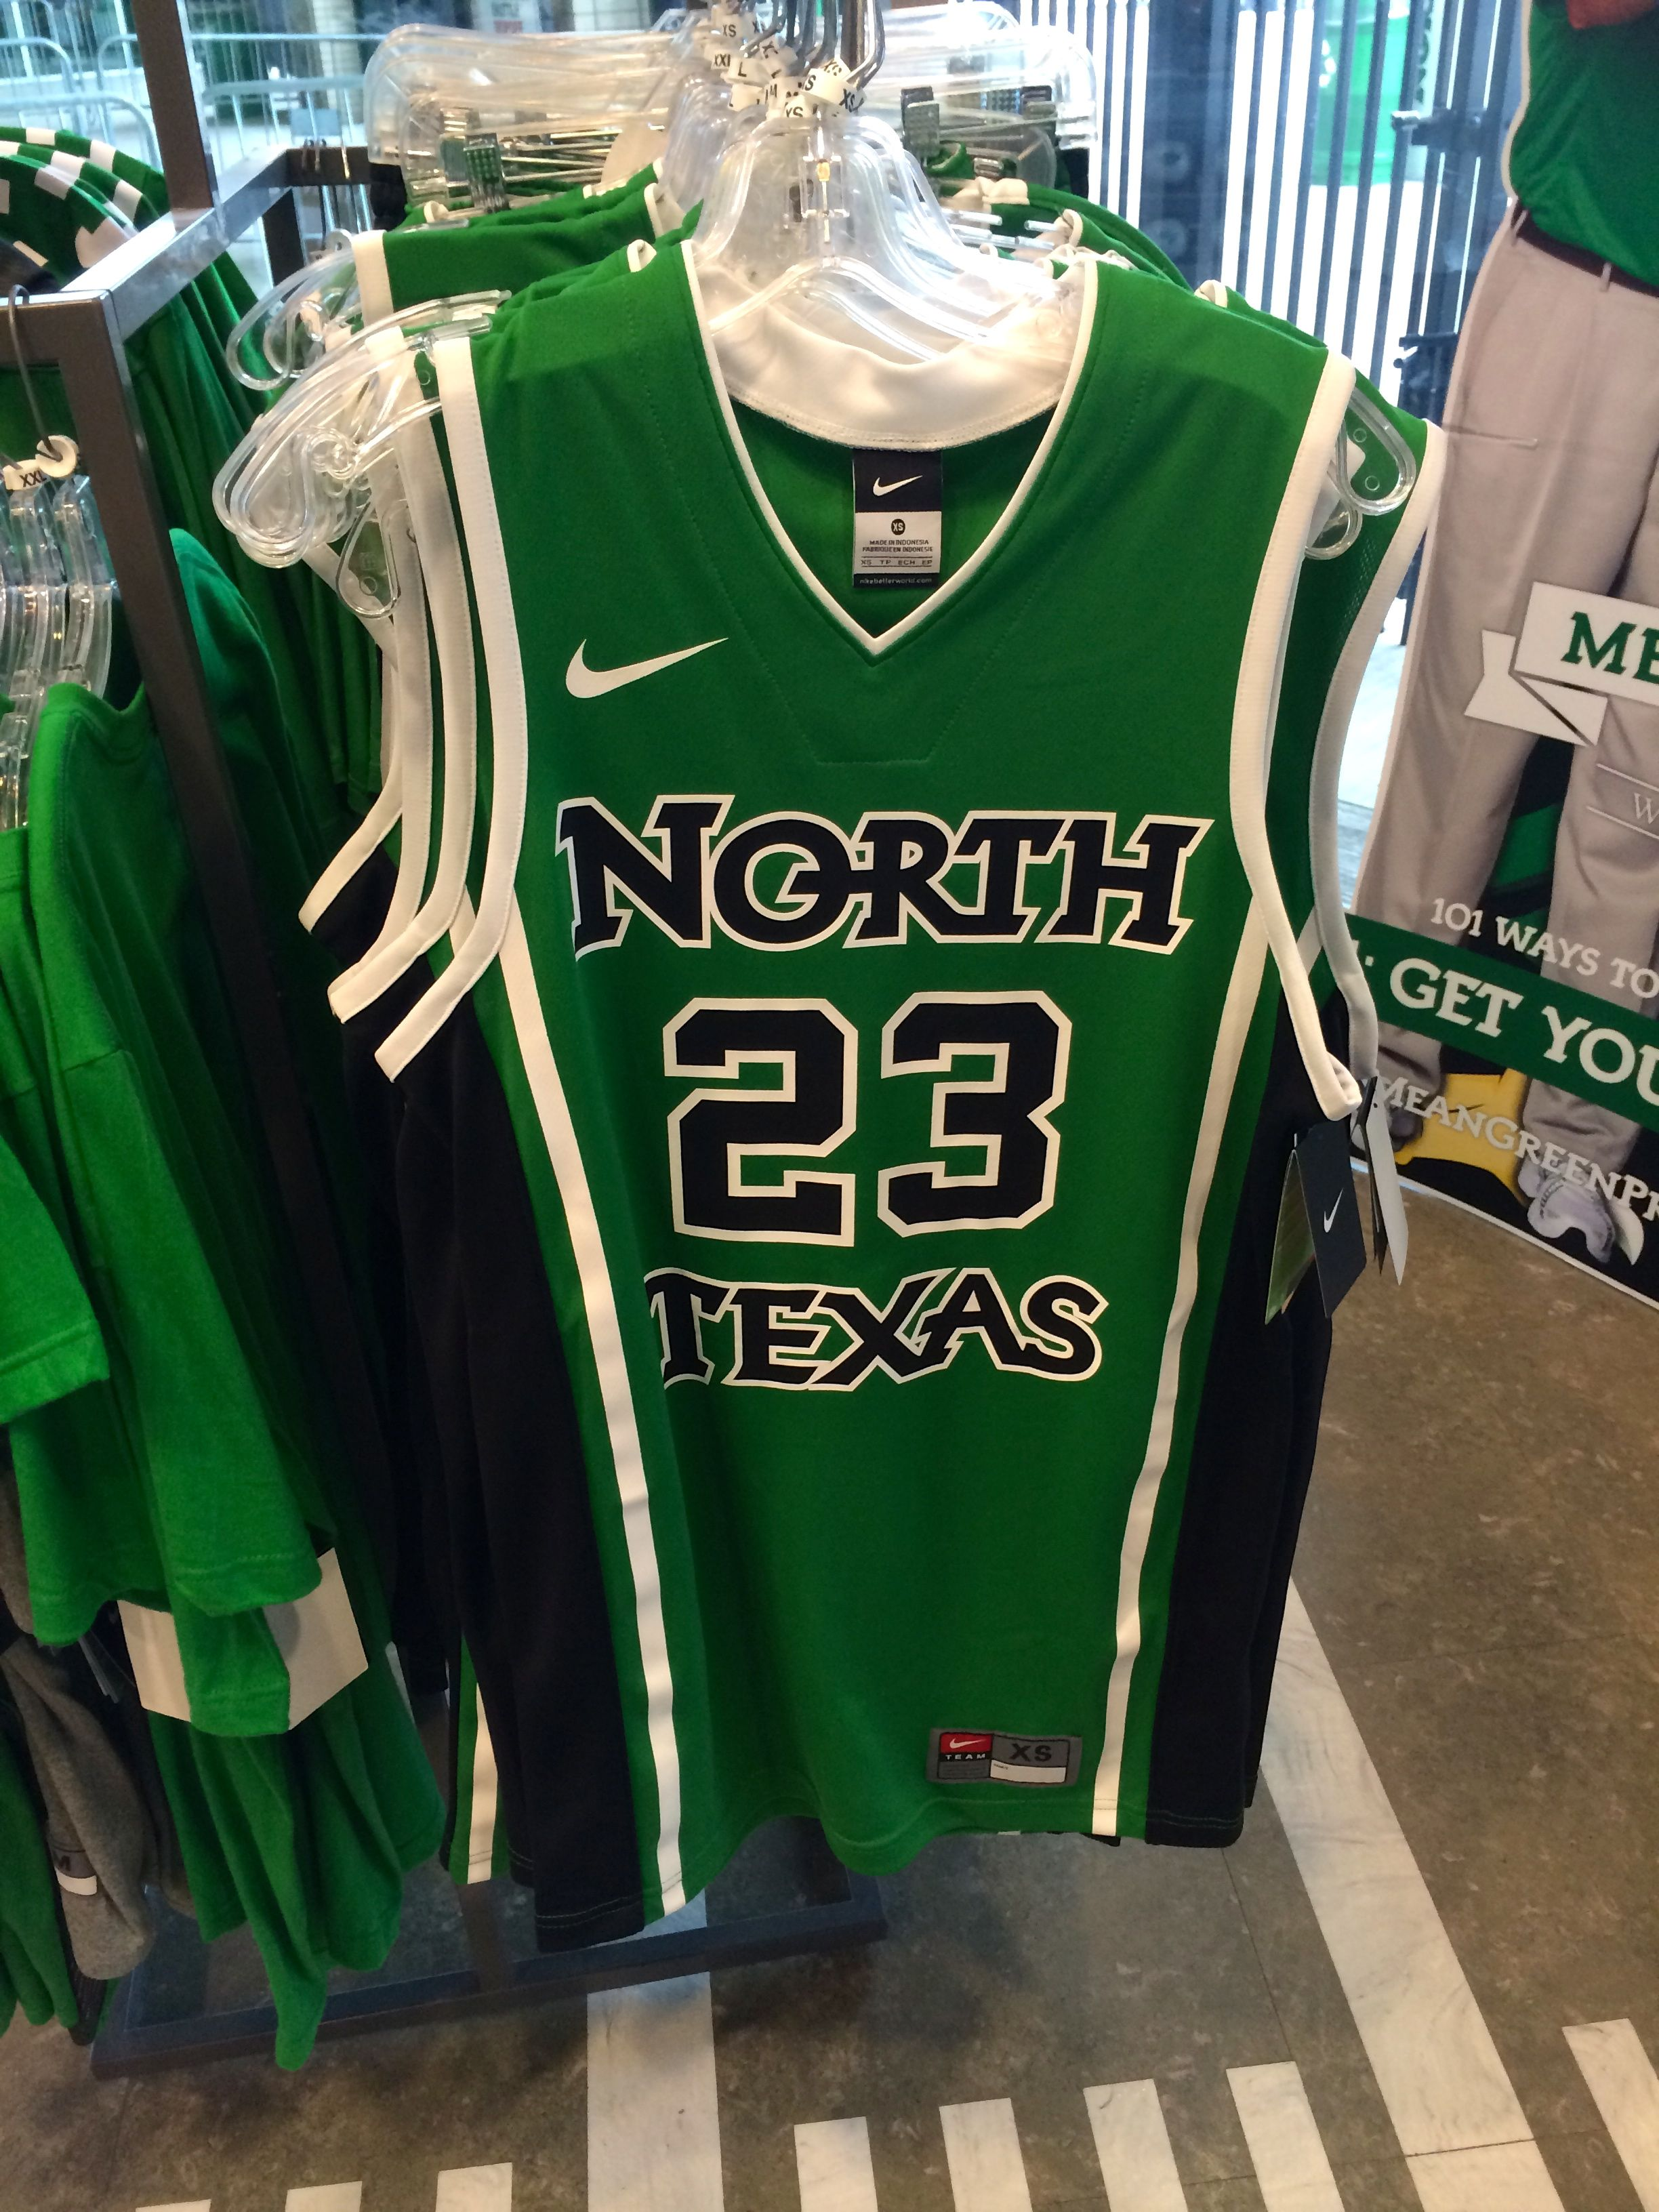 e0c579d9d37e Need a jersey for basketball season  Get your North Texas Nike jersey at  the Apogee Stadium Store for  60.00 and matching shorts for  45.00